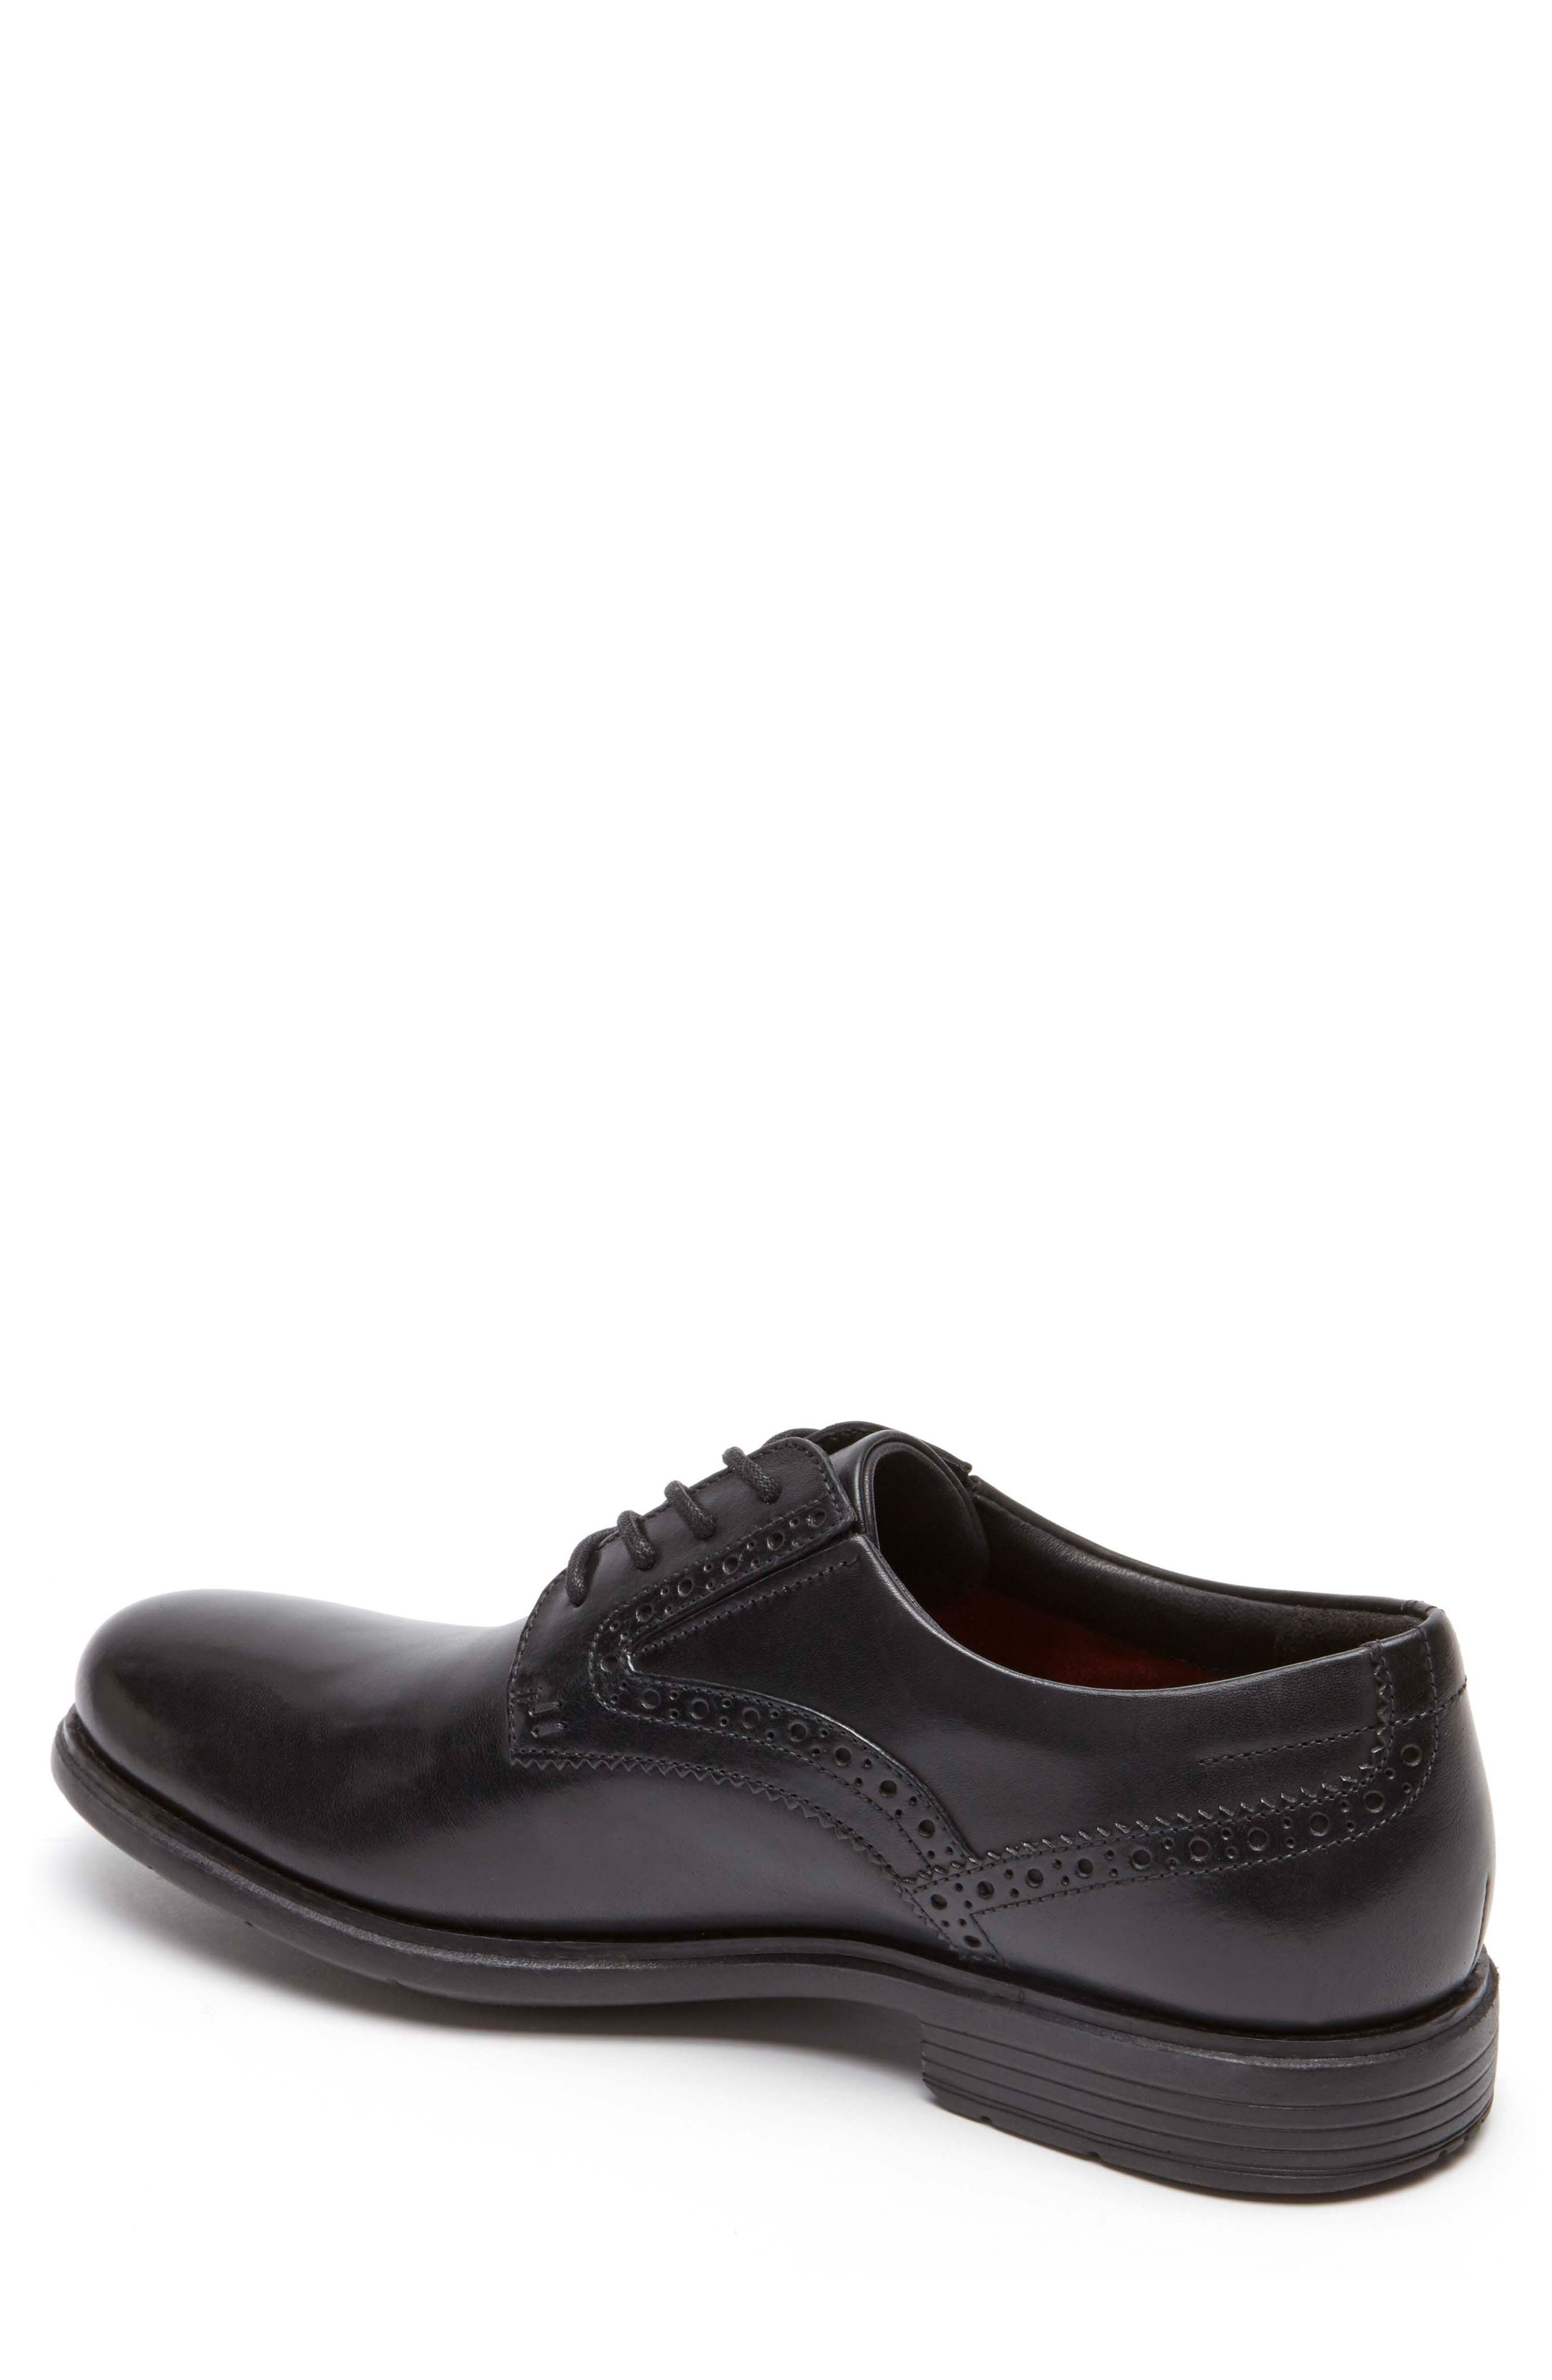 Total Motion Classic Dress Plain Toe Derby,                             Alternate thumbnail 2, color,                             Black Leather